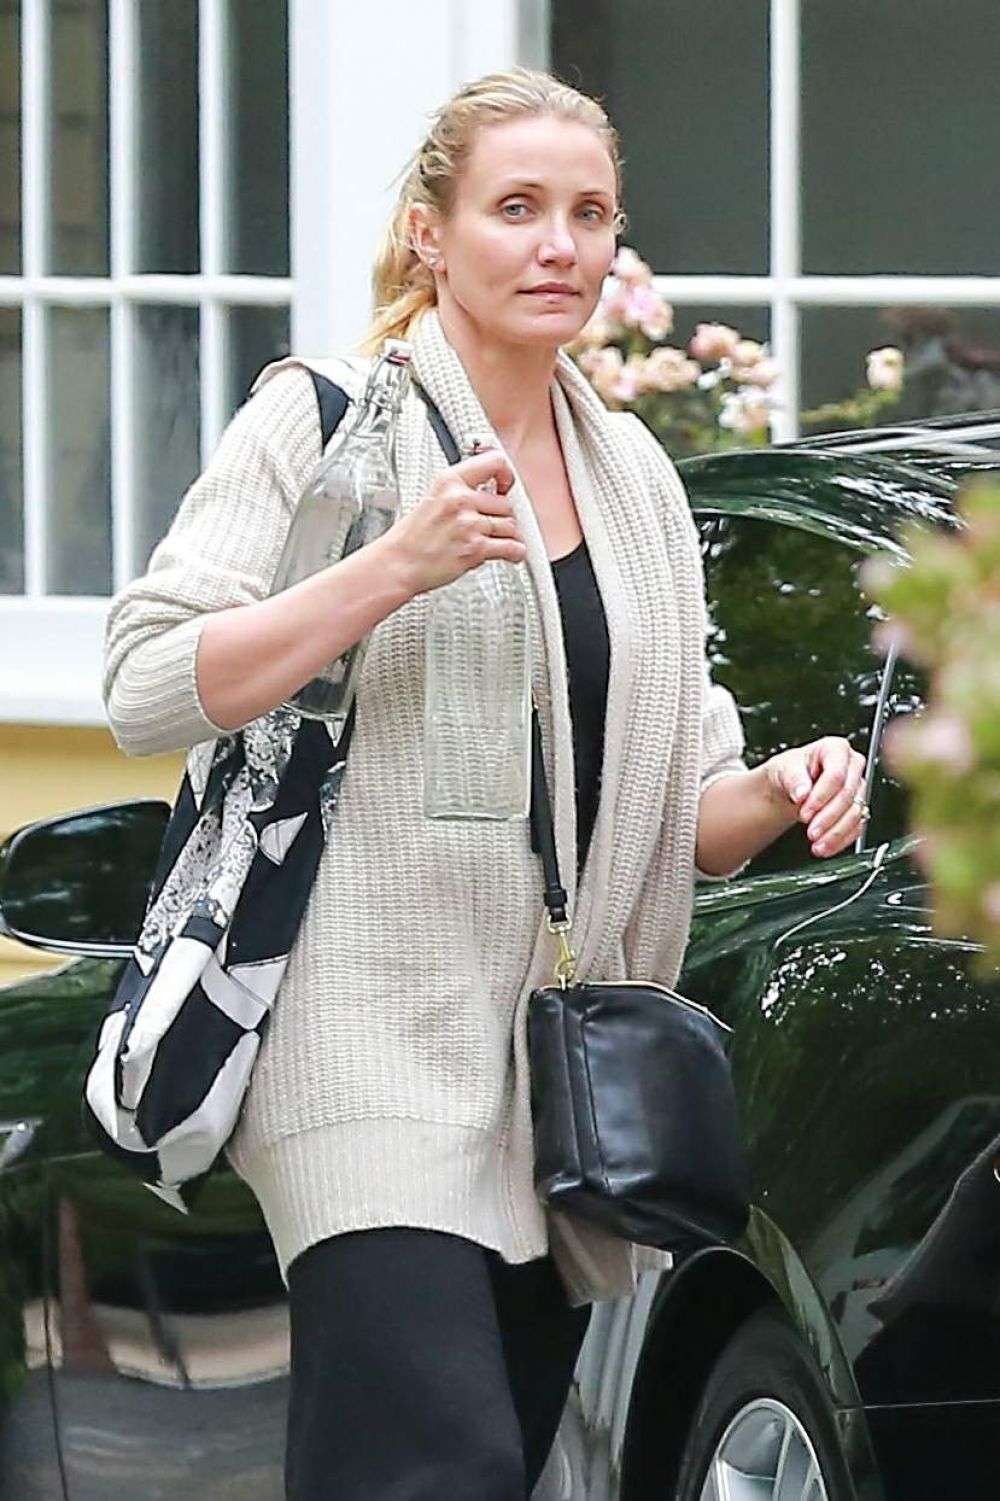 Cameron Diaz And Husband Out In Brentwood - CelebzzCameron Diaz Husband